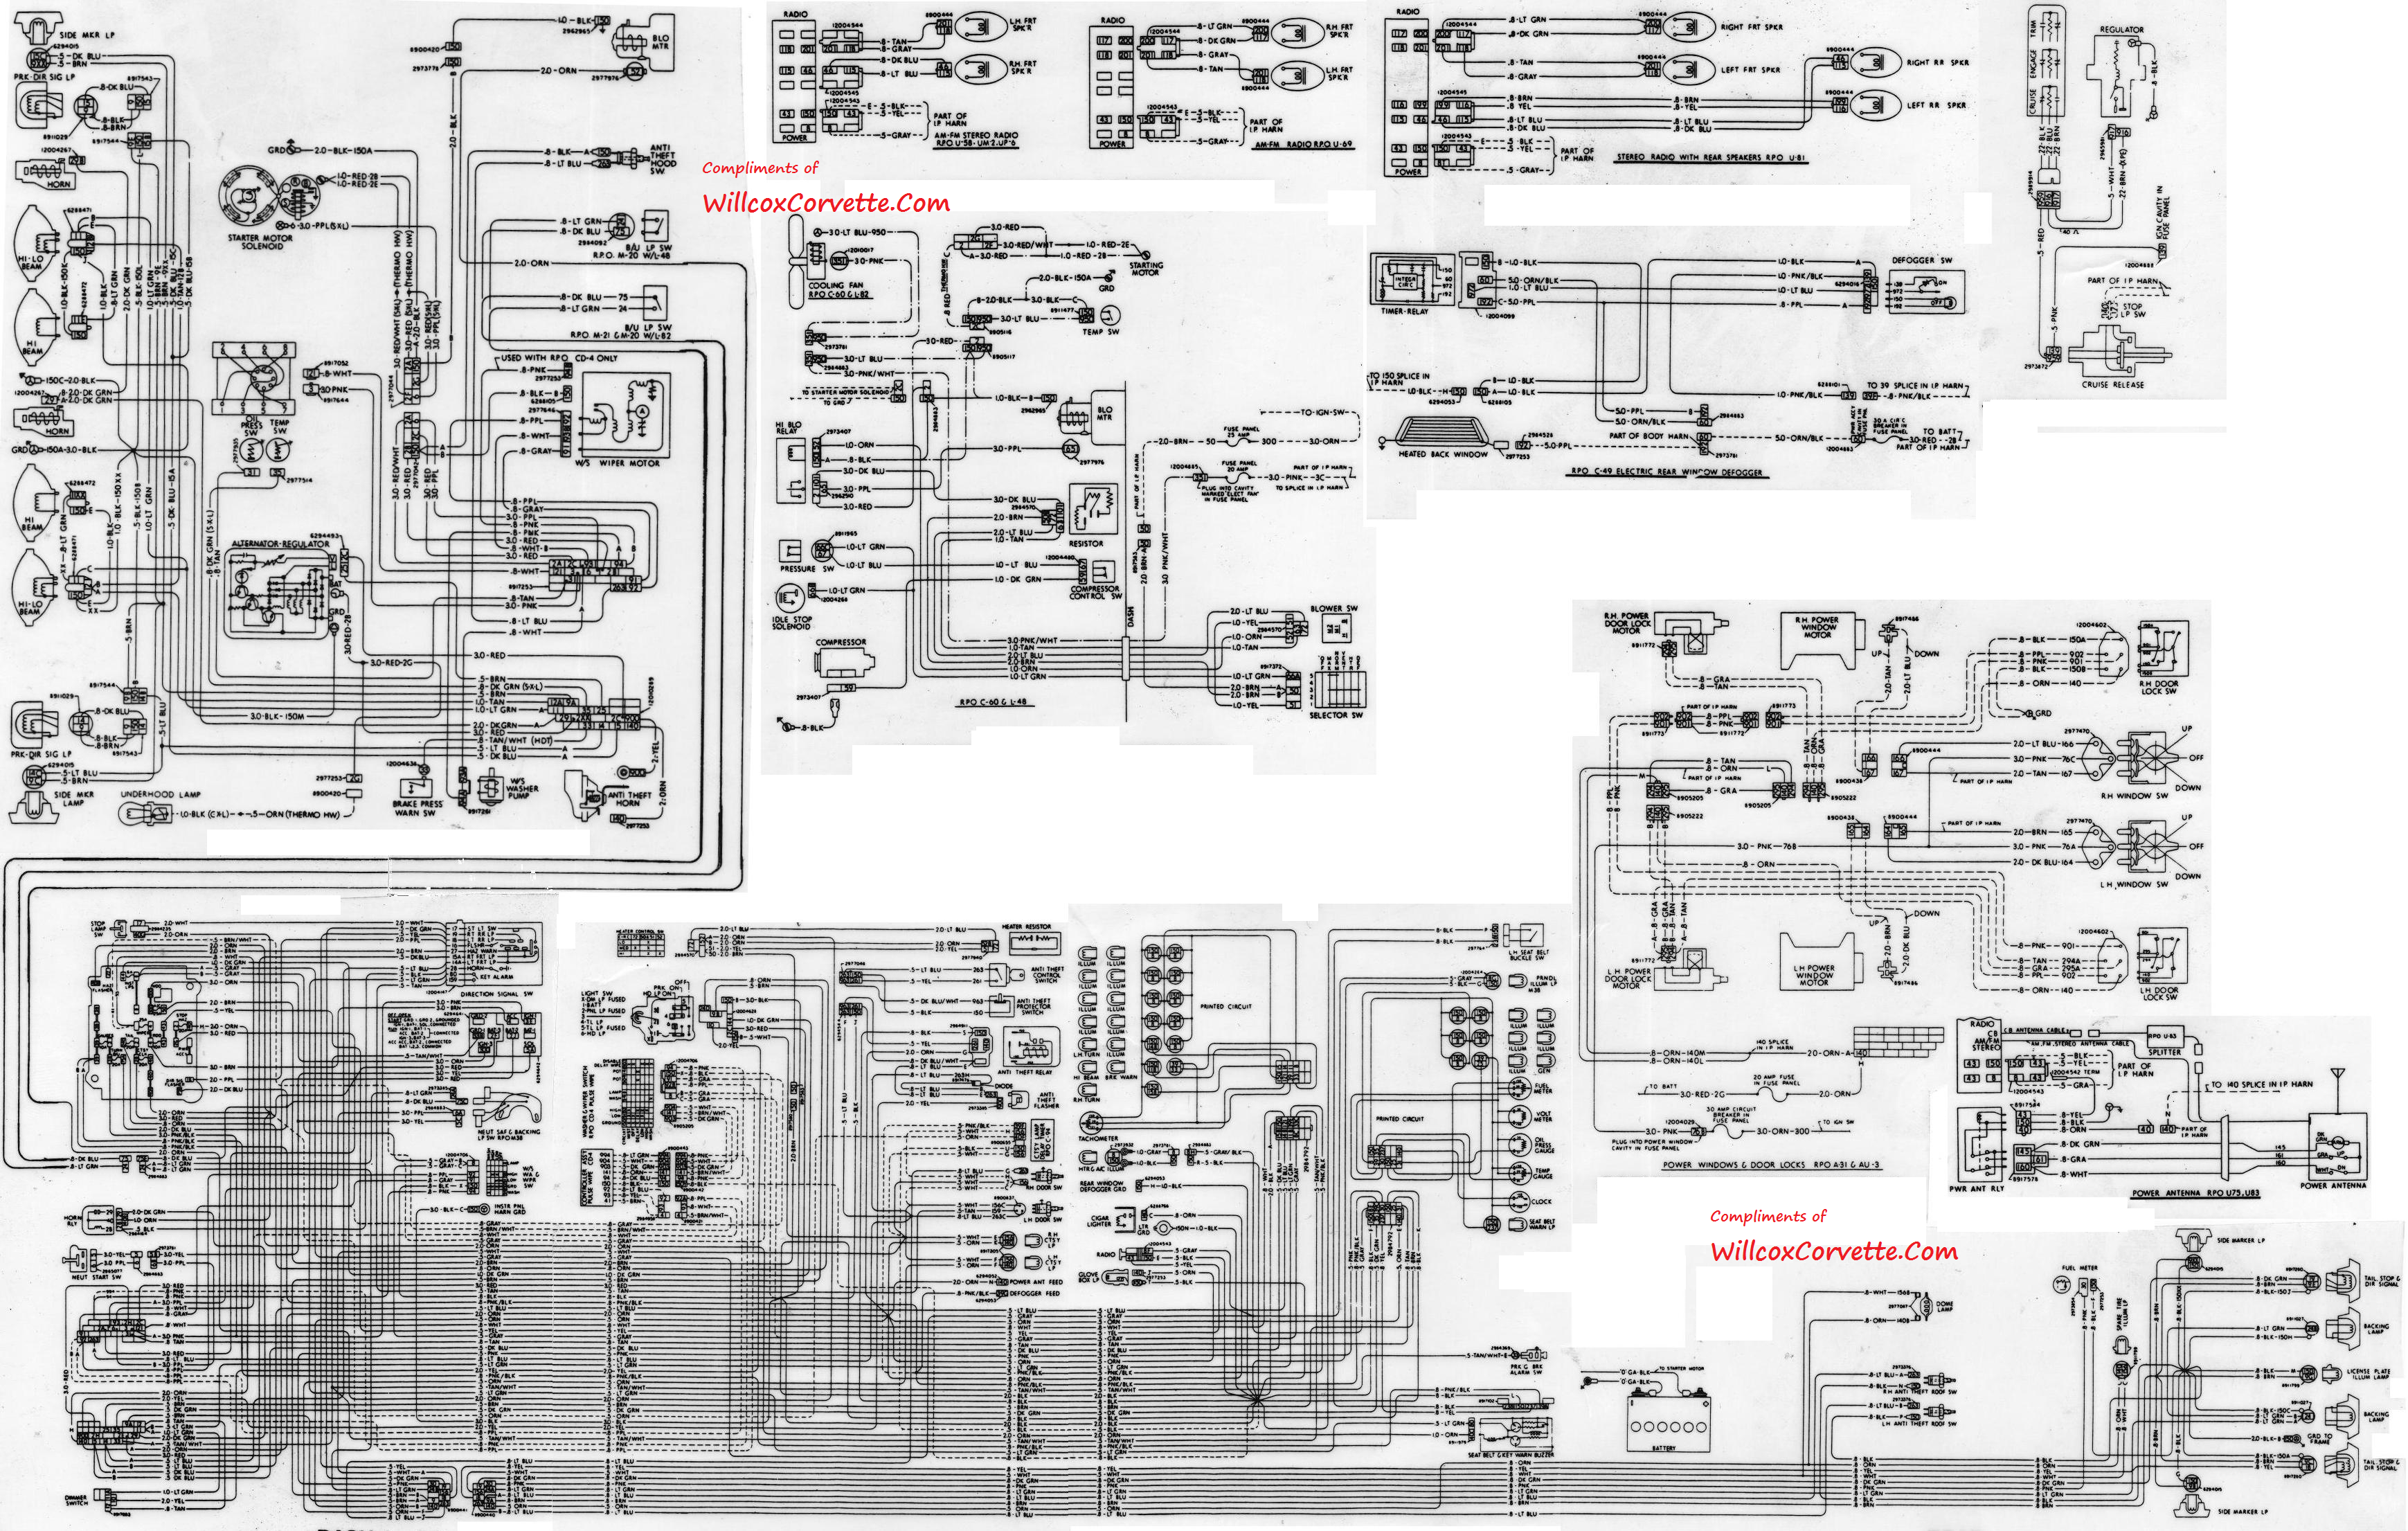 1979 wiring diagram corvetteforum chevrolet corvette forum rh corvetteforum com 1979 corvette wiring diagram download 1979 corvette wiring diagram download